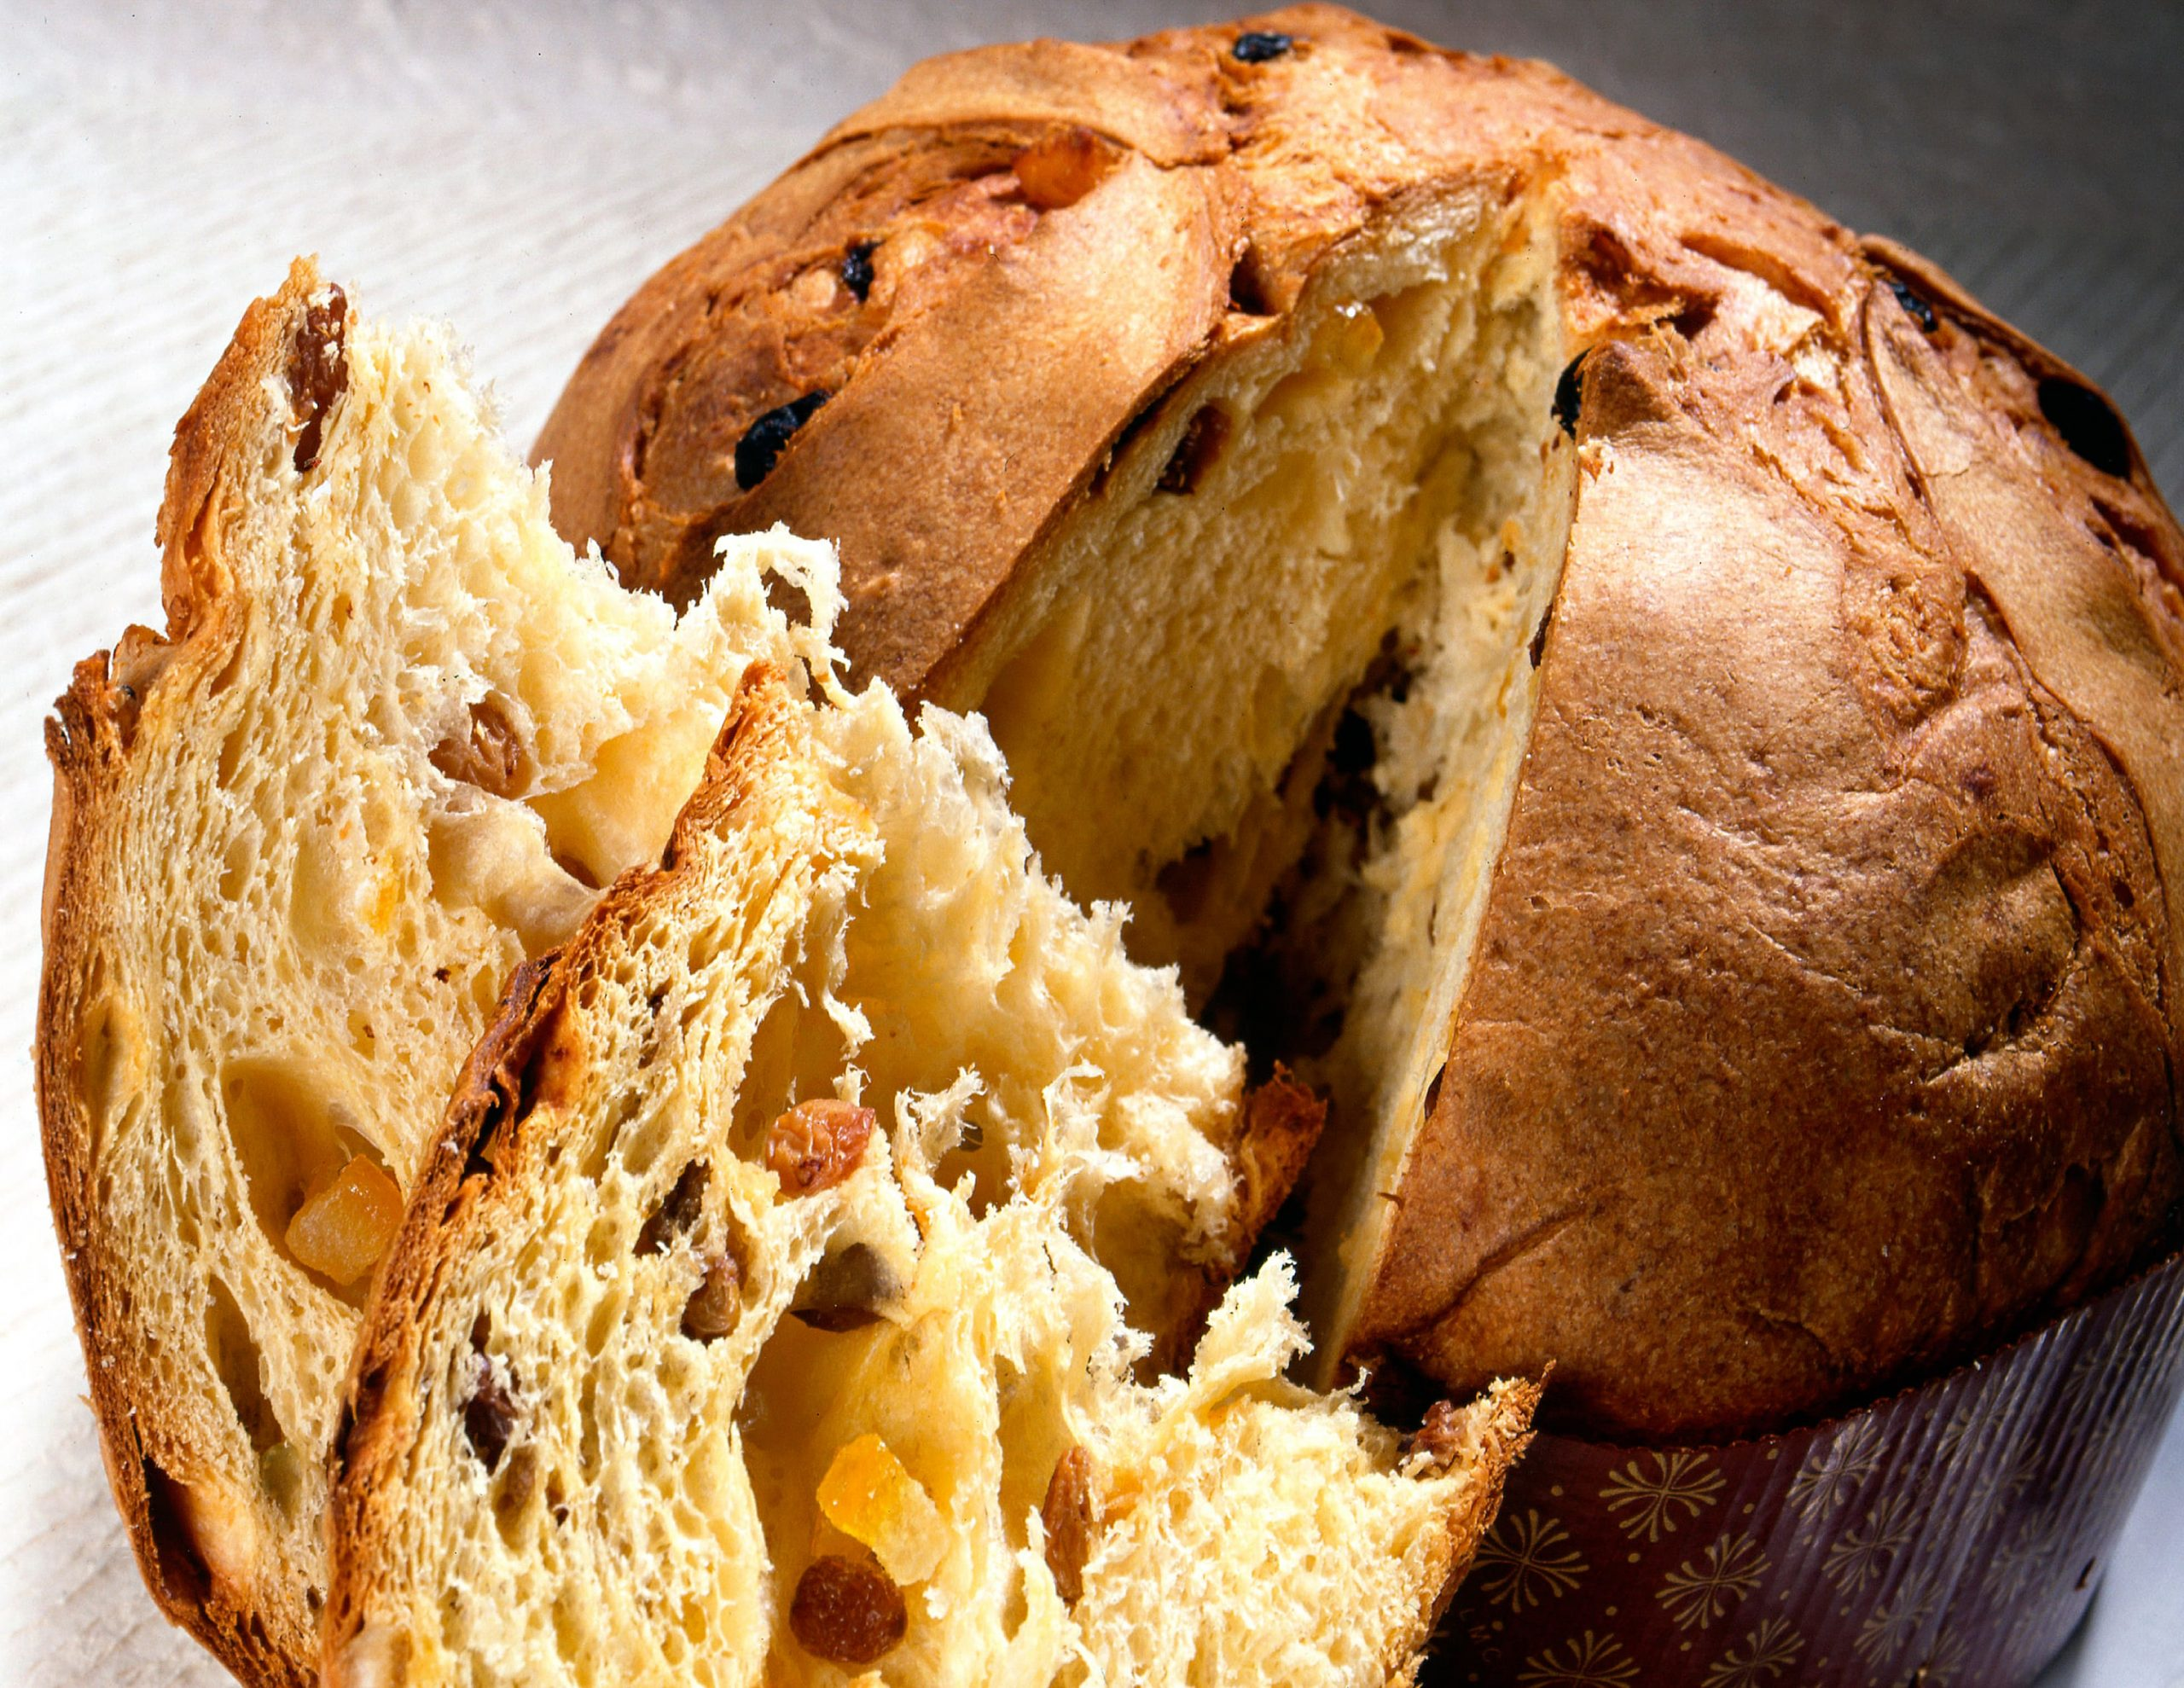 sliced-traditional-panettone-with-fruit-5Q47YHE-min